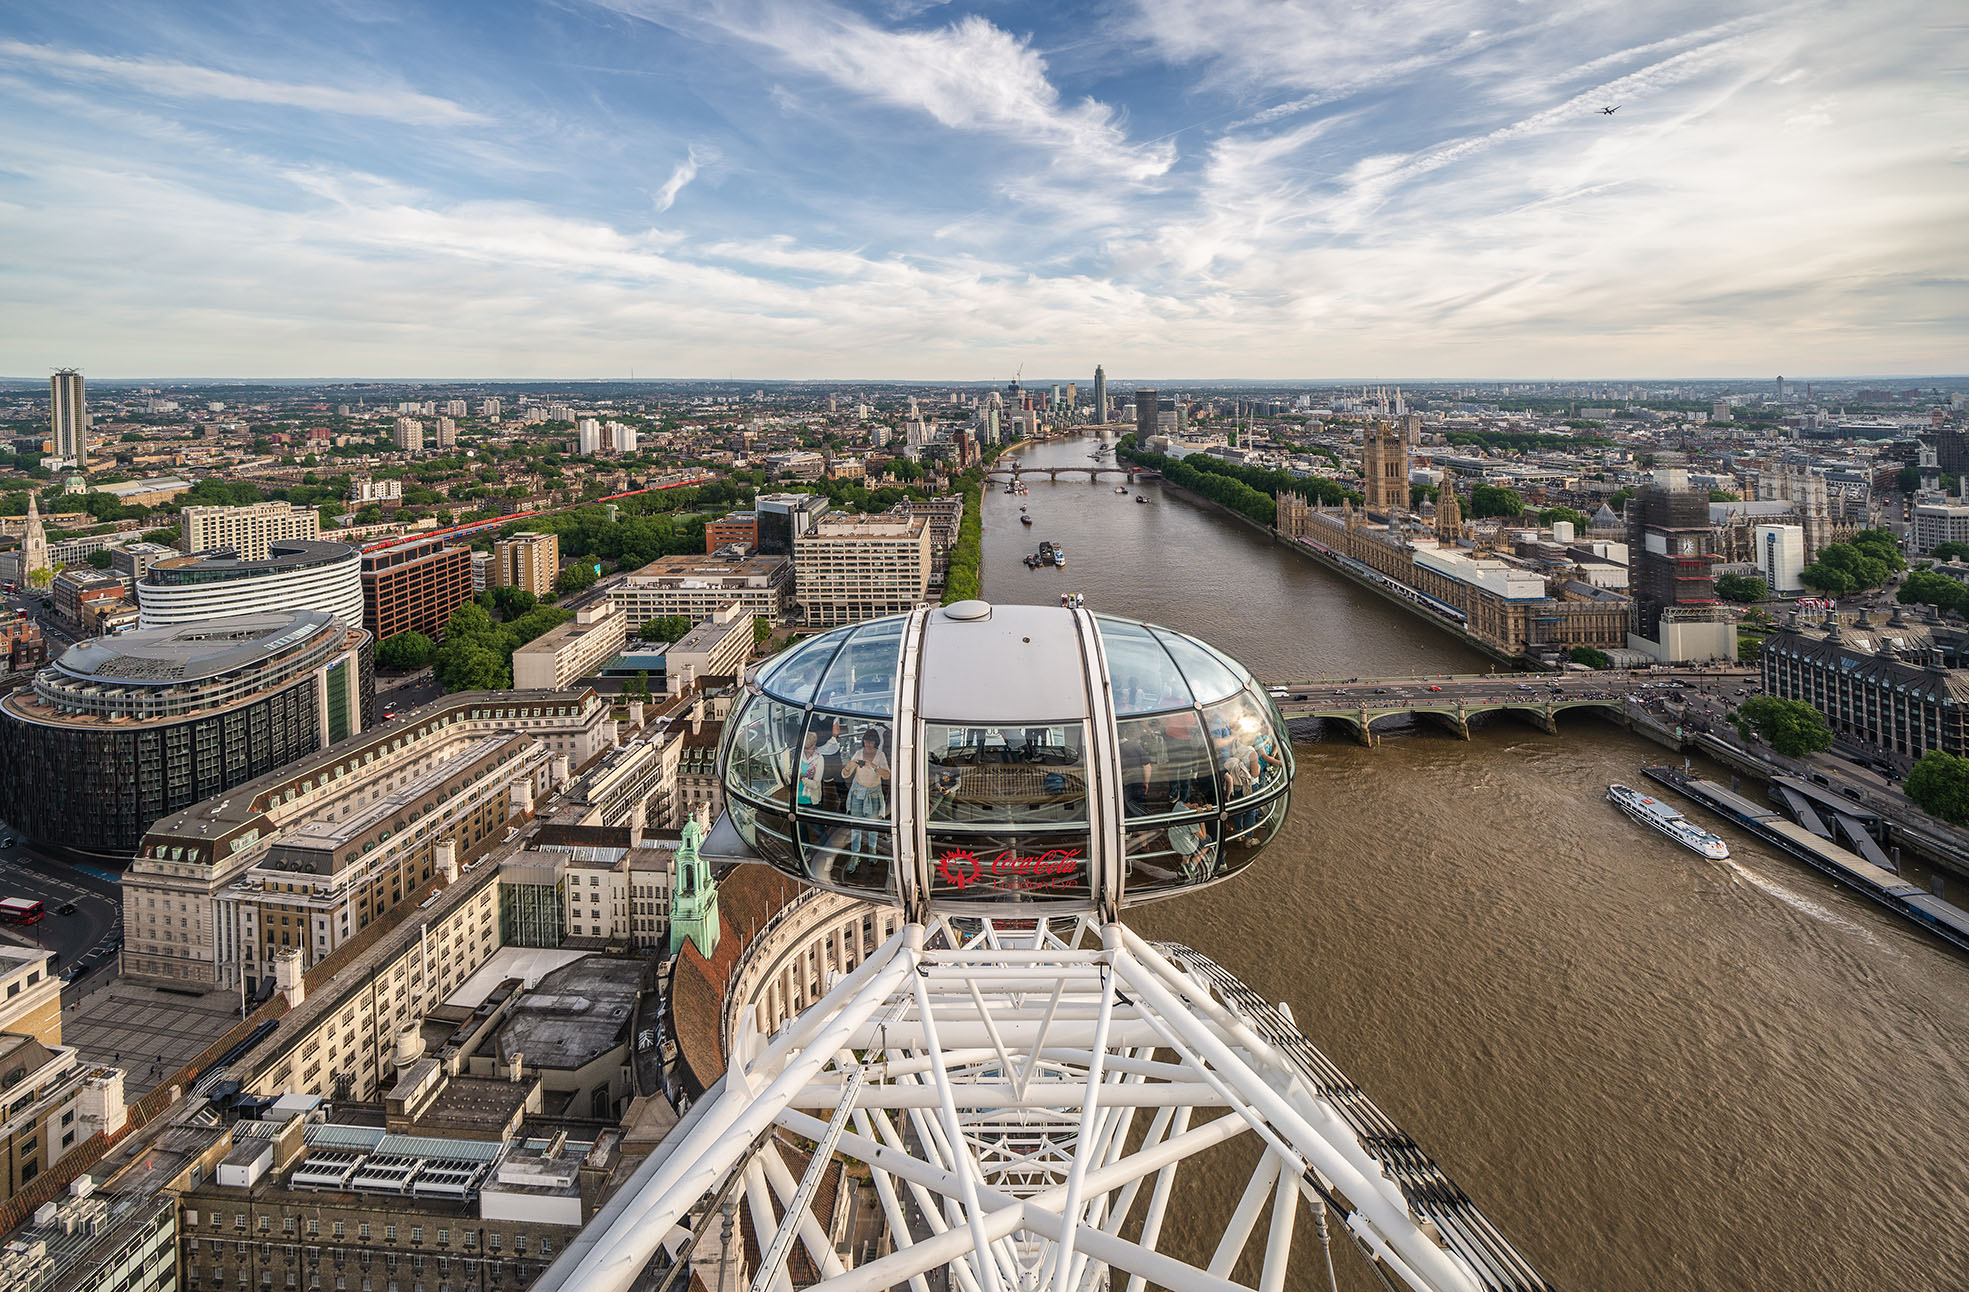 Opening Times Prices 2 For 1 Offers The London Eye